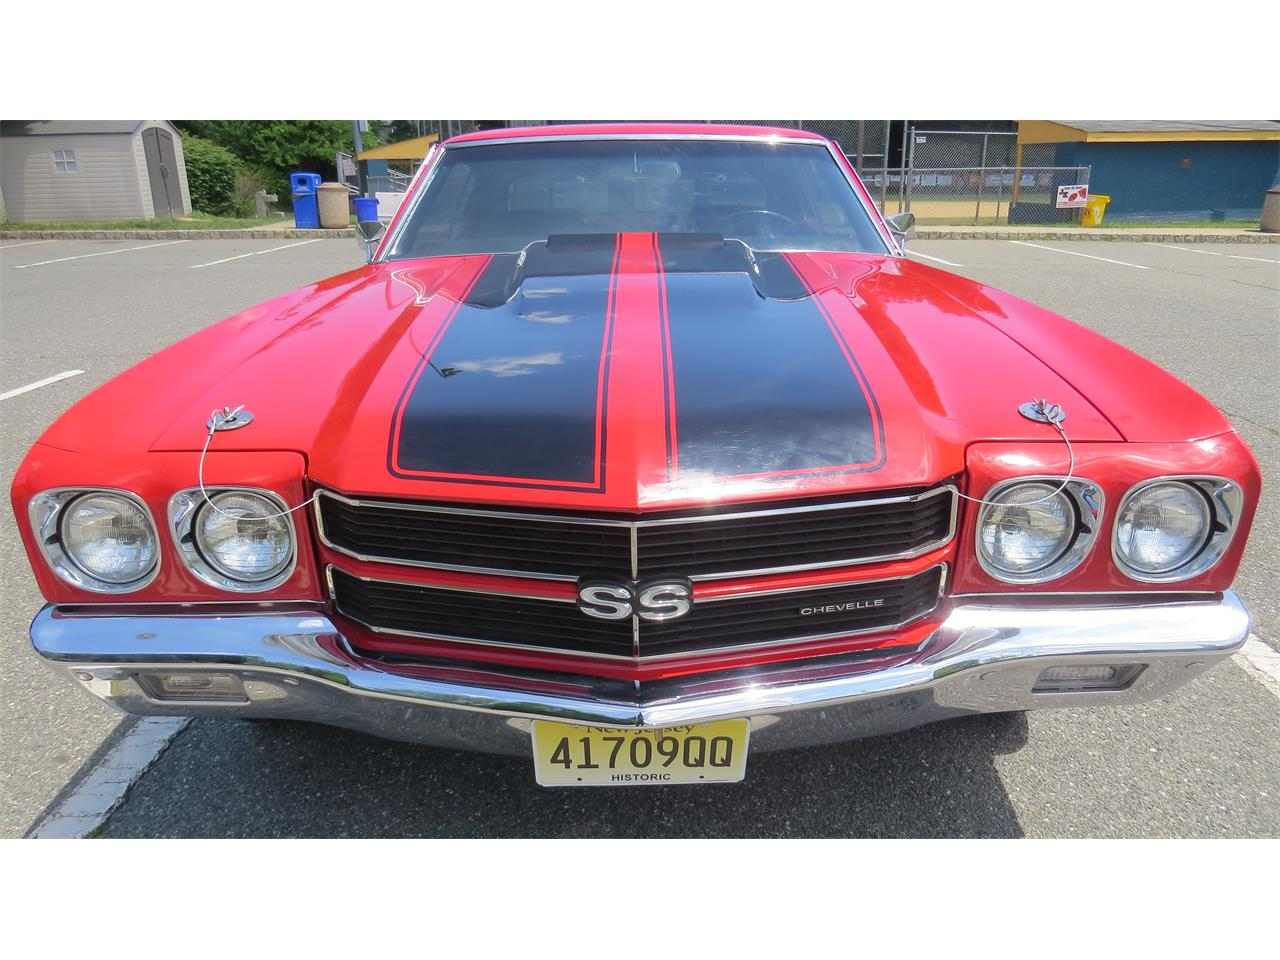 Large Picture of Classic 1970 Chevelle SS located in New Jersey - $75,000.00 - PSWS